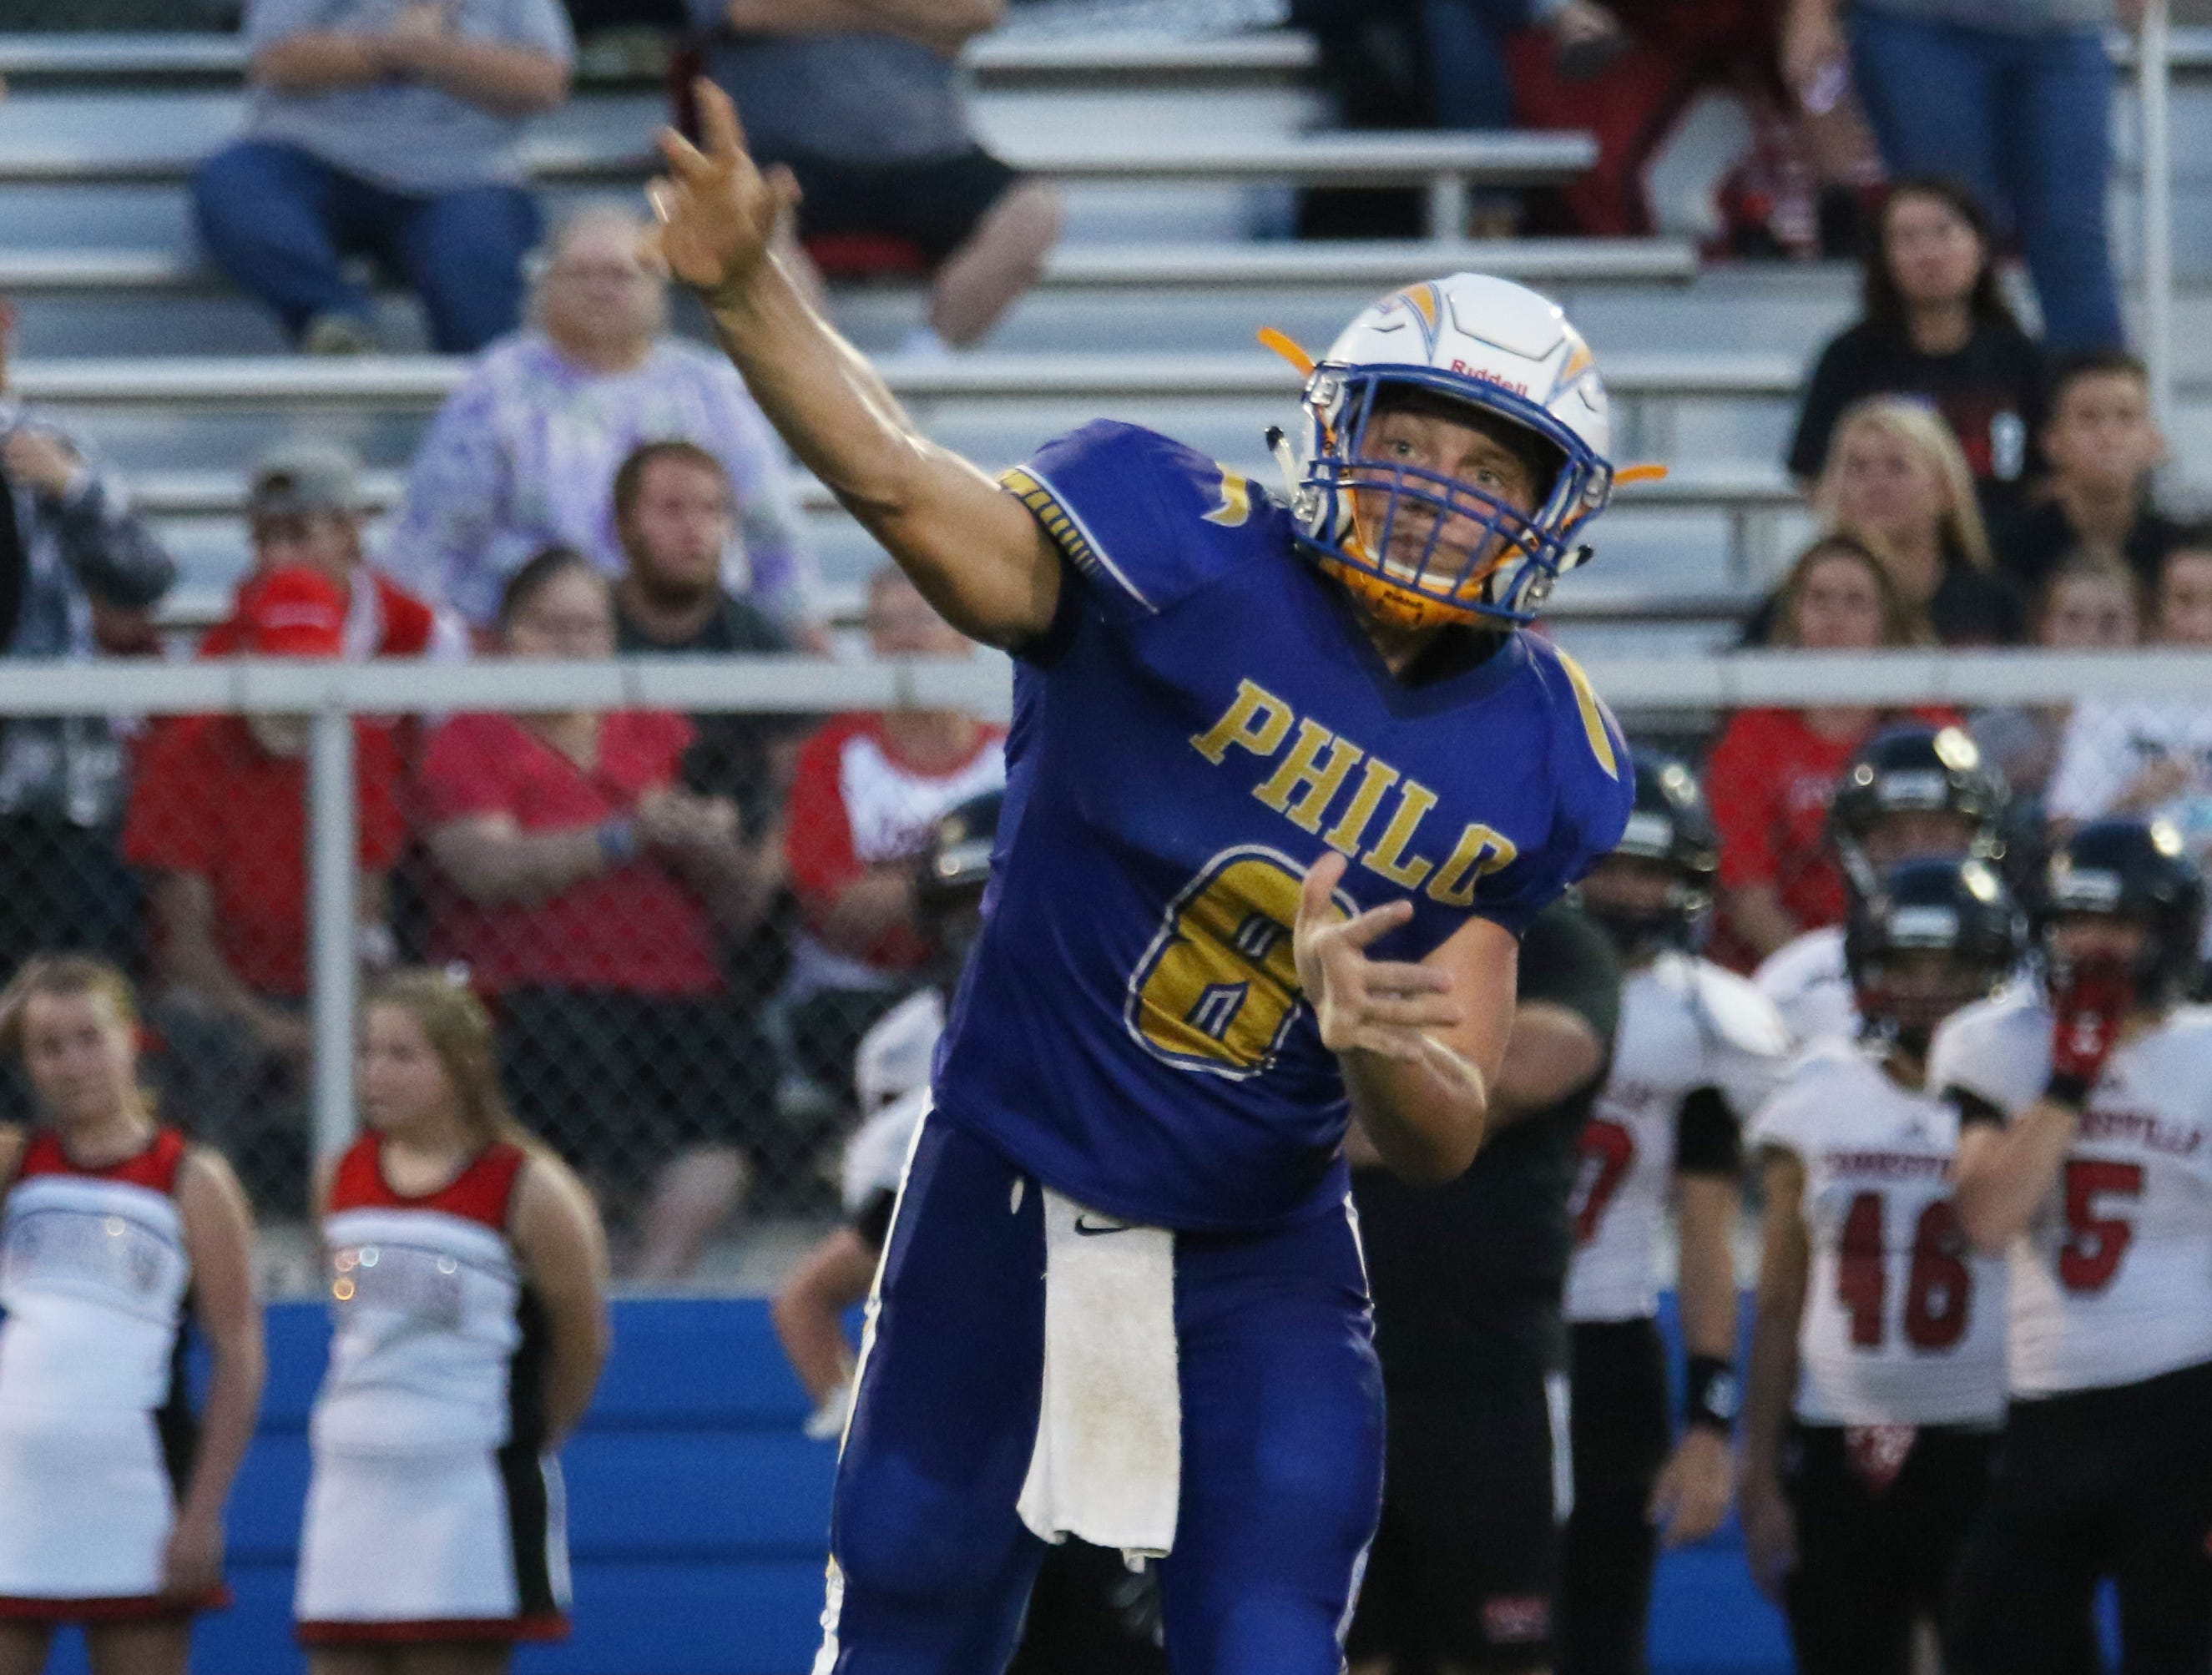 Philo's Hunter Adolph unleashes a pass against Crooksville.